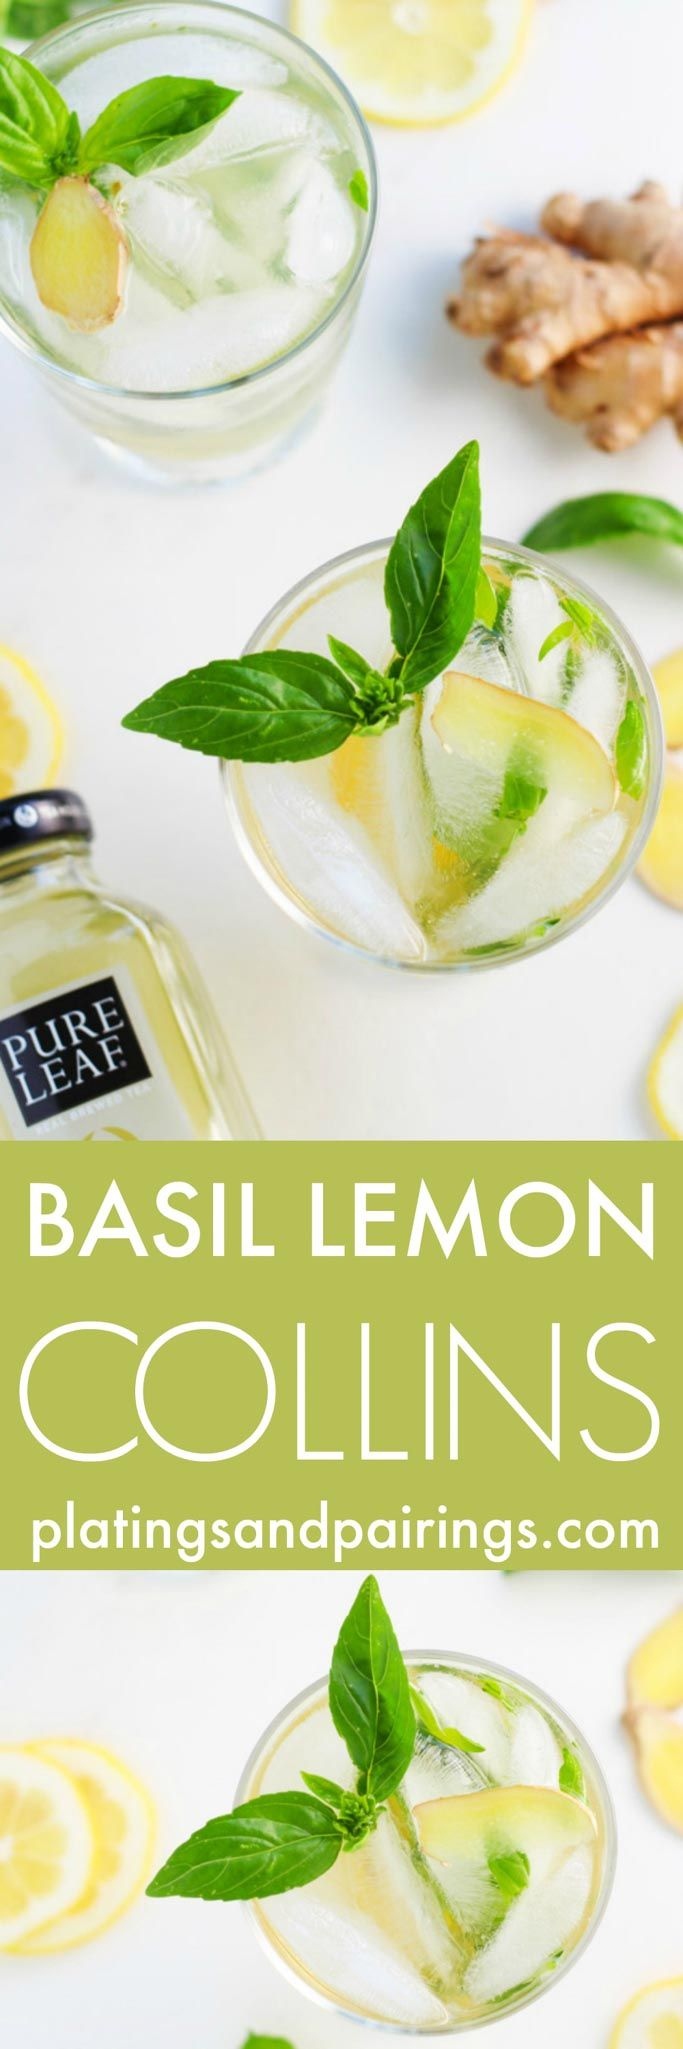 This Basil Lemon Collins is a refreshing cocktail made with gin, basil, lemon, ginger and tea. It's a perfect drink for sipping in the summer sunshine! | platingsandpairings.com